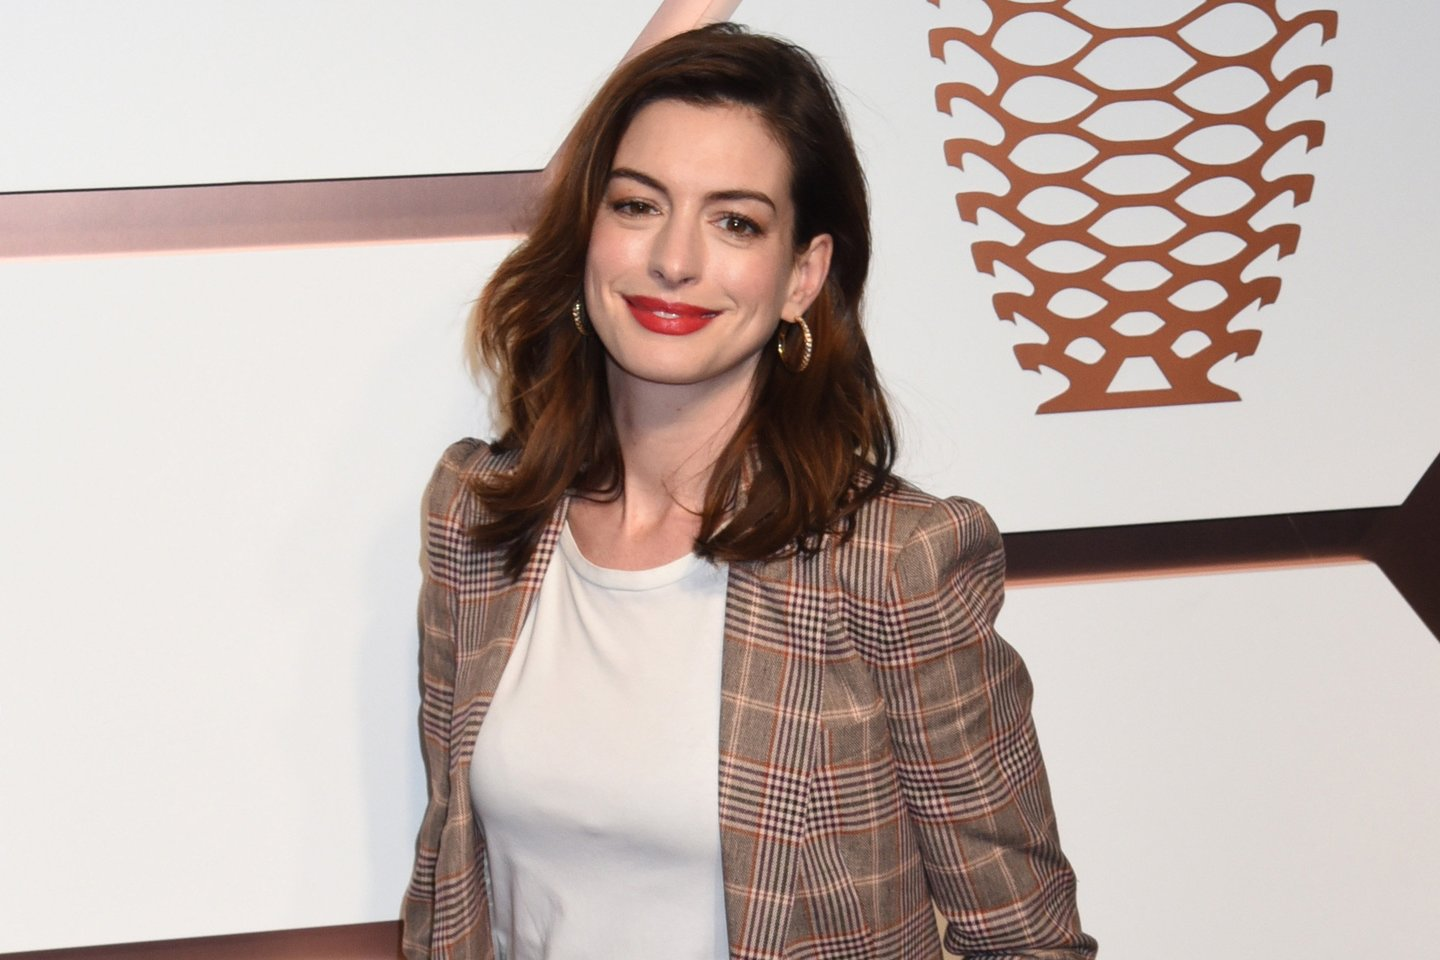 Anne Hathaway.<br>Scanpix/LJF/ADM/Capital Pictures nuotr.